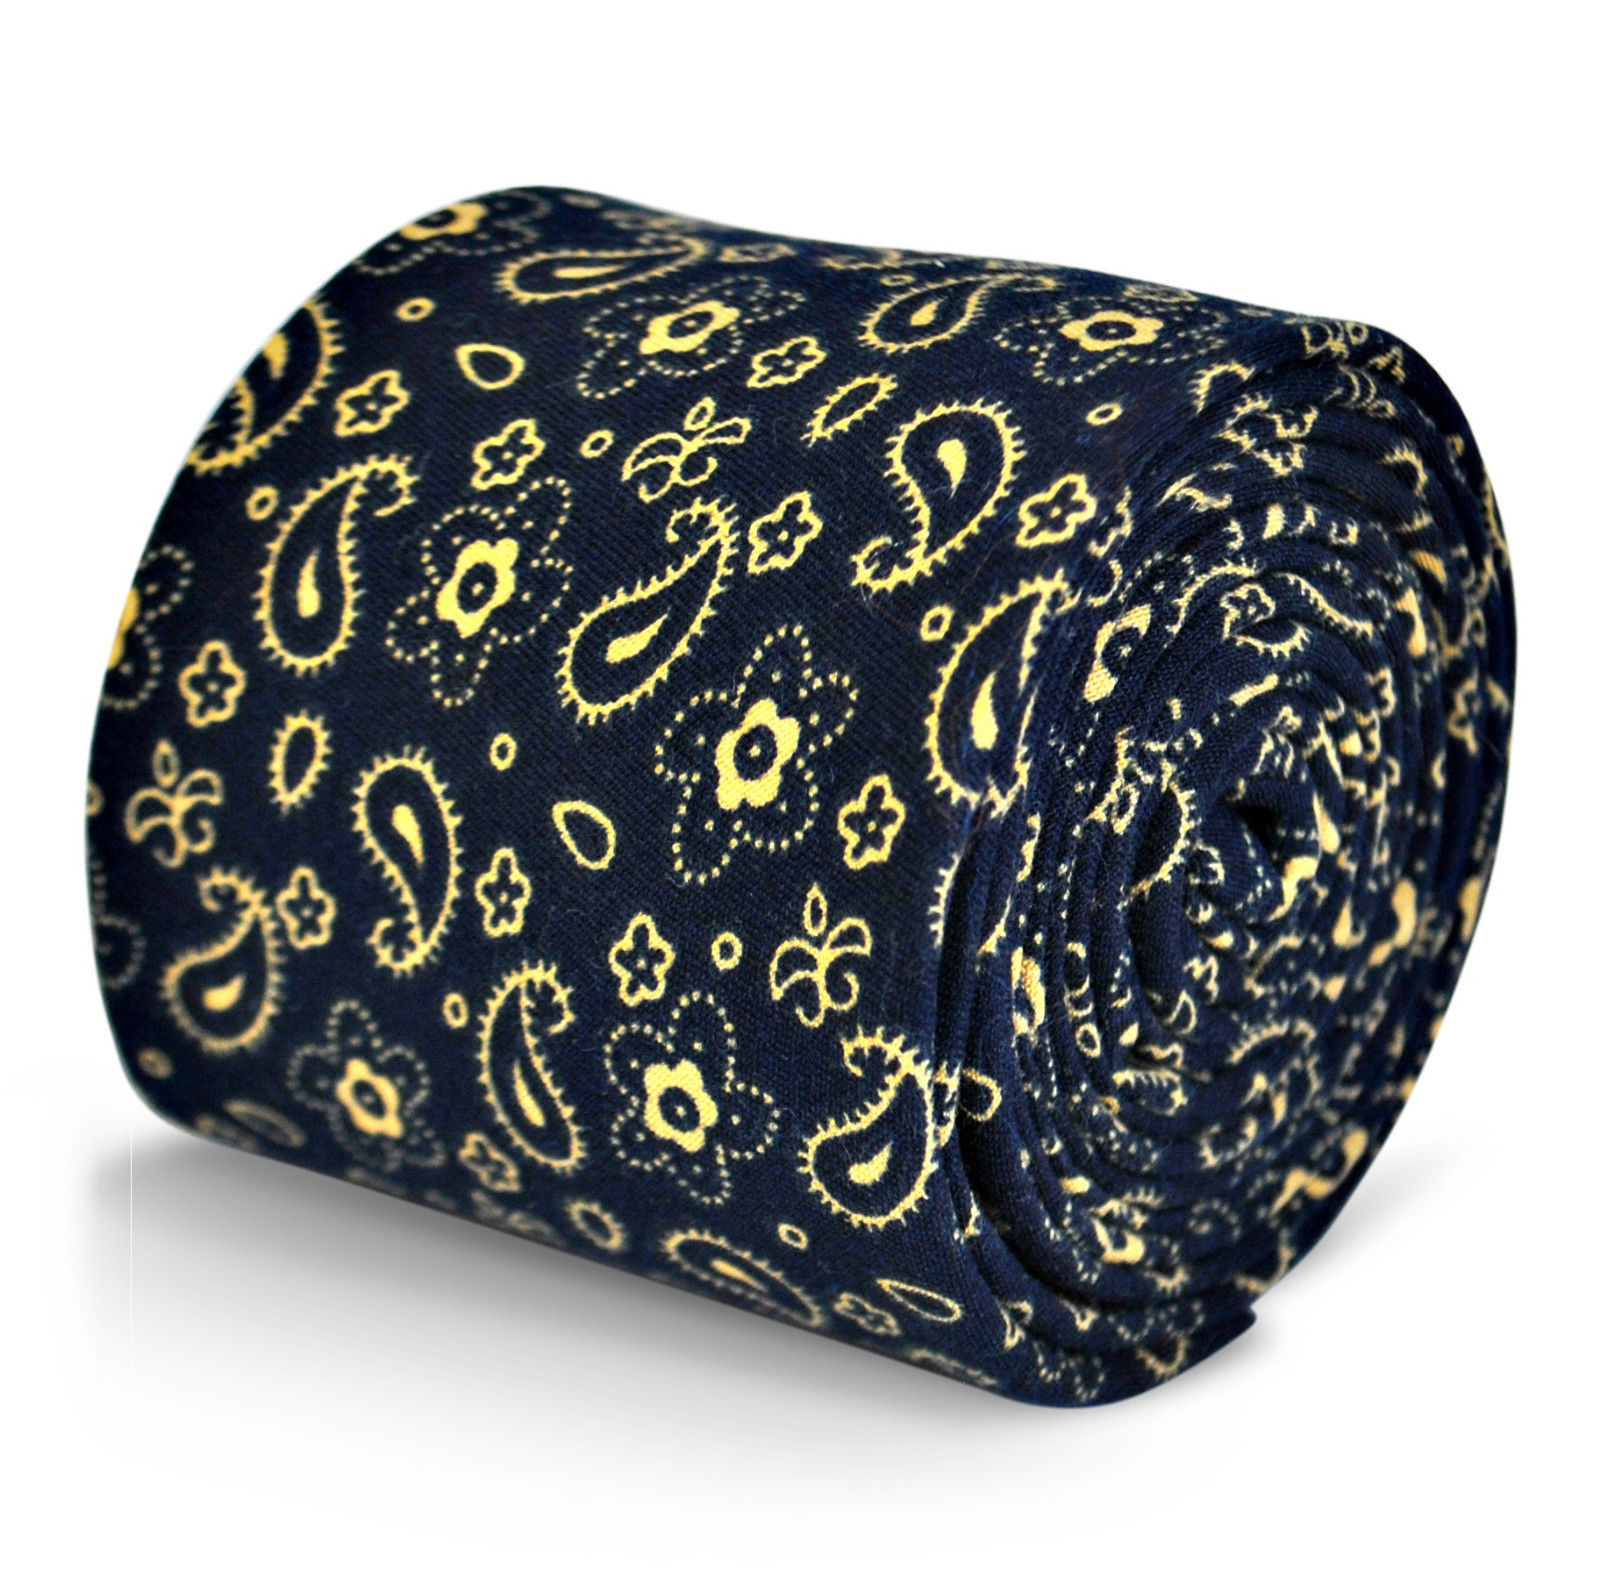 Frederick Thomas mens cotton linen tie in navy blue with paisley pattern FT3126